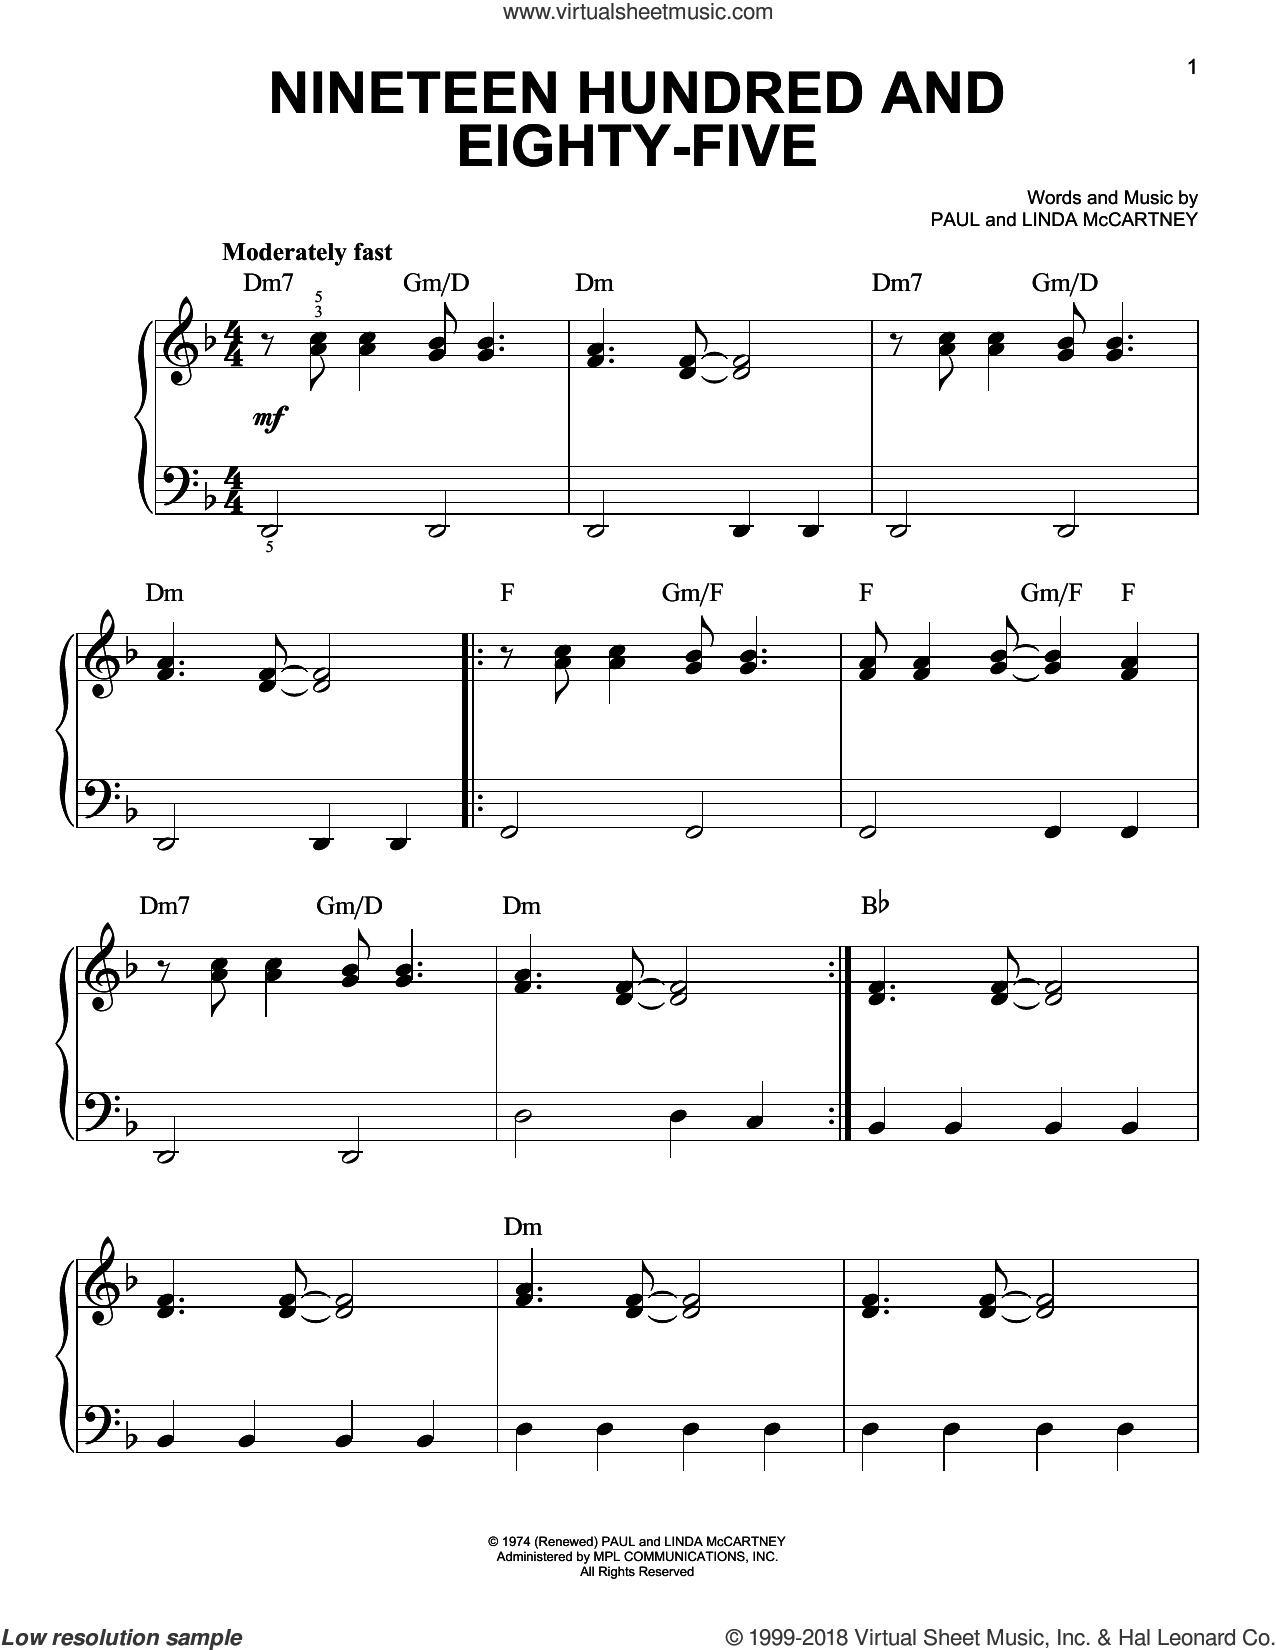 Nineteen Hundred And Eighty-Five sheet music for piano solo by Paul McCartney and Linda McCartney, easy skill level